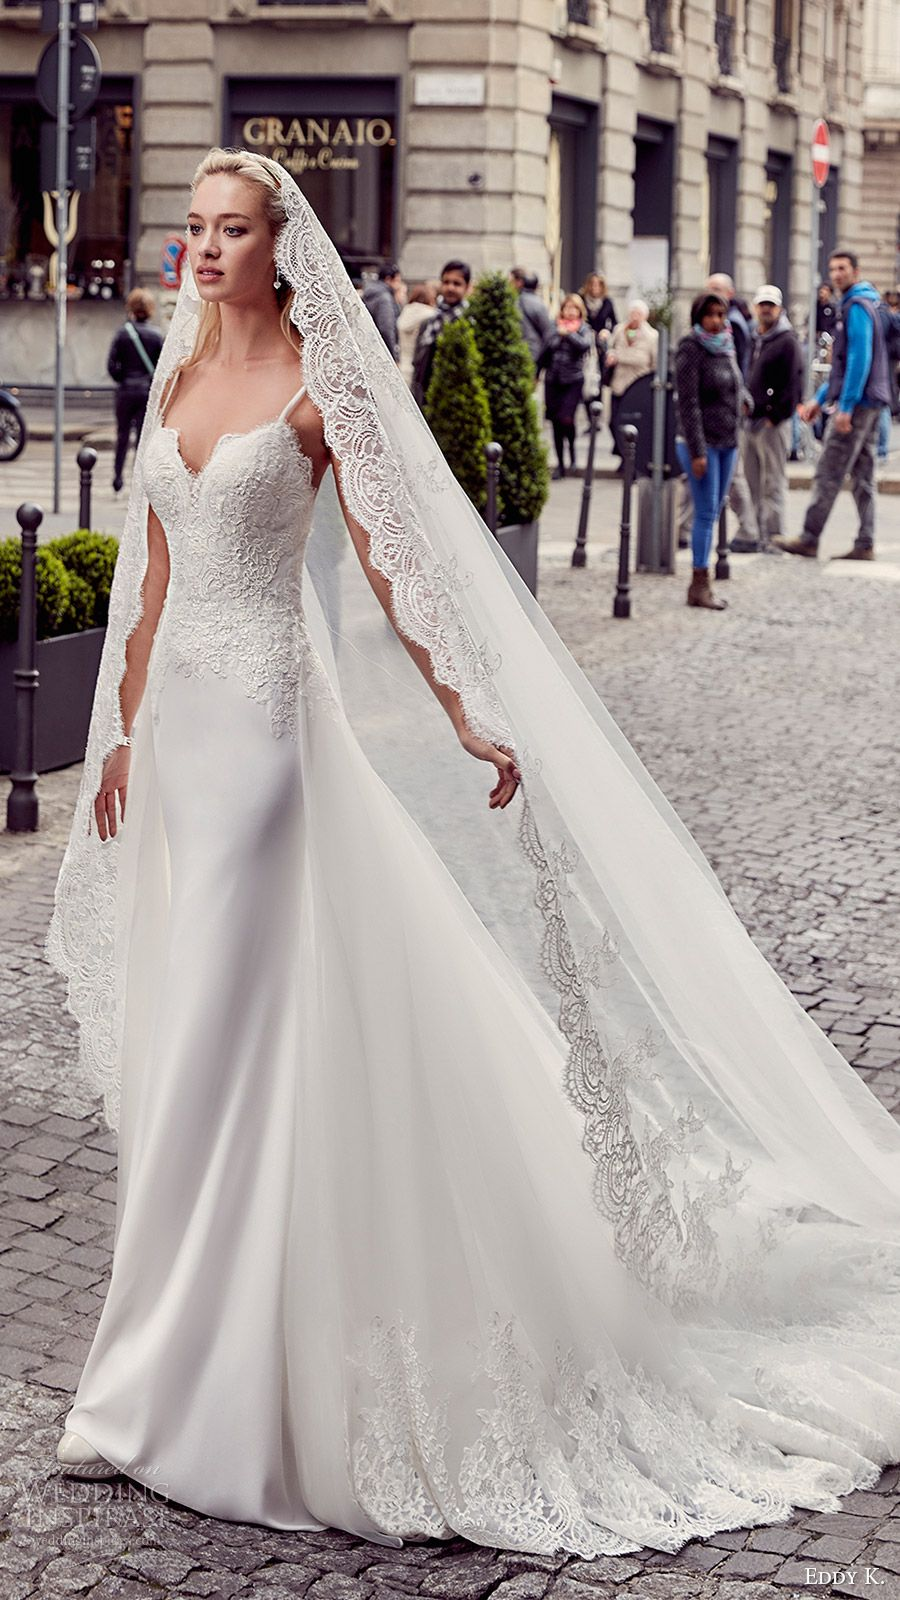 Long veil wedding dresses  Eddy K  Wedding Dresses u Milano Bridal Collection  Lace